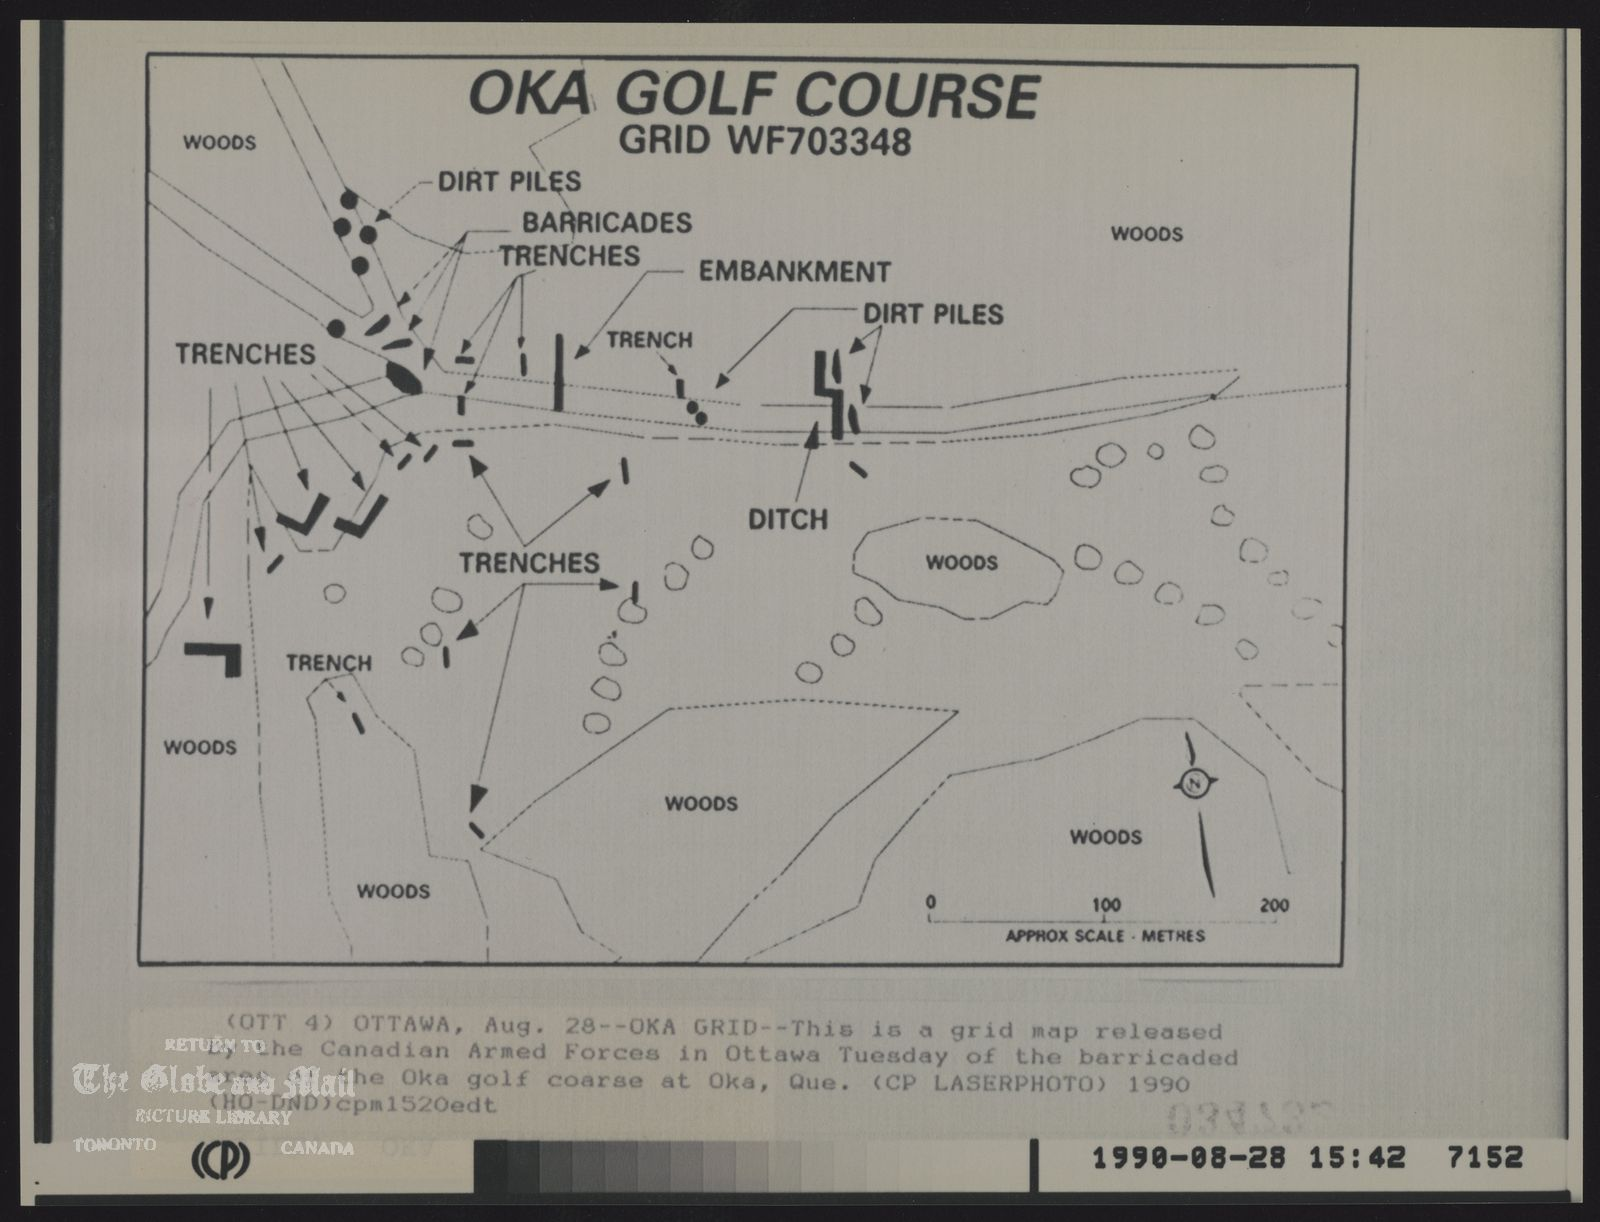 INDIANS Canada Mohawk OKA Golf Course Grid WF703348 (OTT 4) OTTAWA, Aug. 28--OKA GRID--This is a grid map released by the Canadian Armed Forces in Ottawa Tuesday of the barricaded areas of the Oka golf coarse at Oka, Que. (CP Laserphoto) 1990 (HO DND) cpm152edt